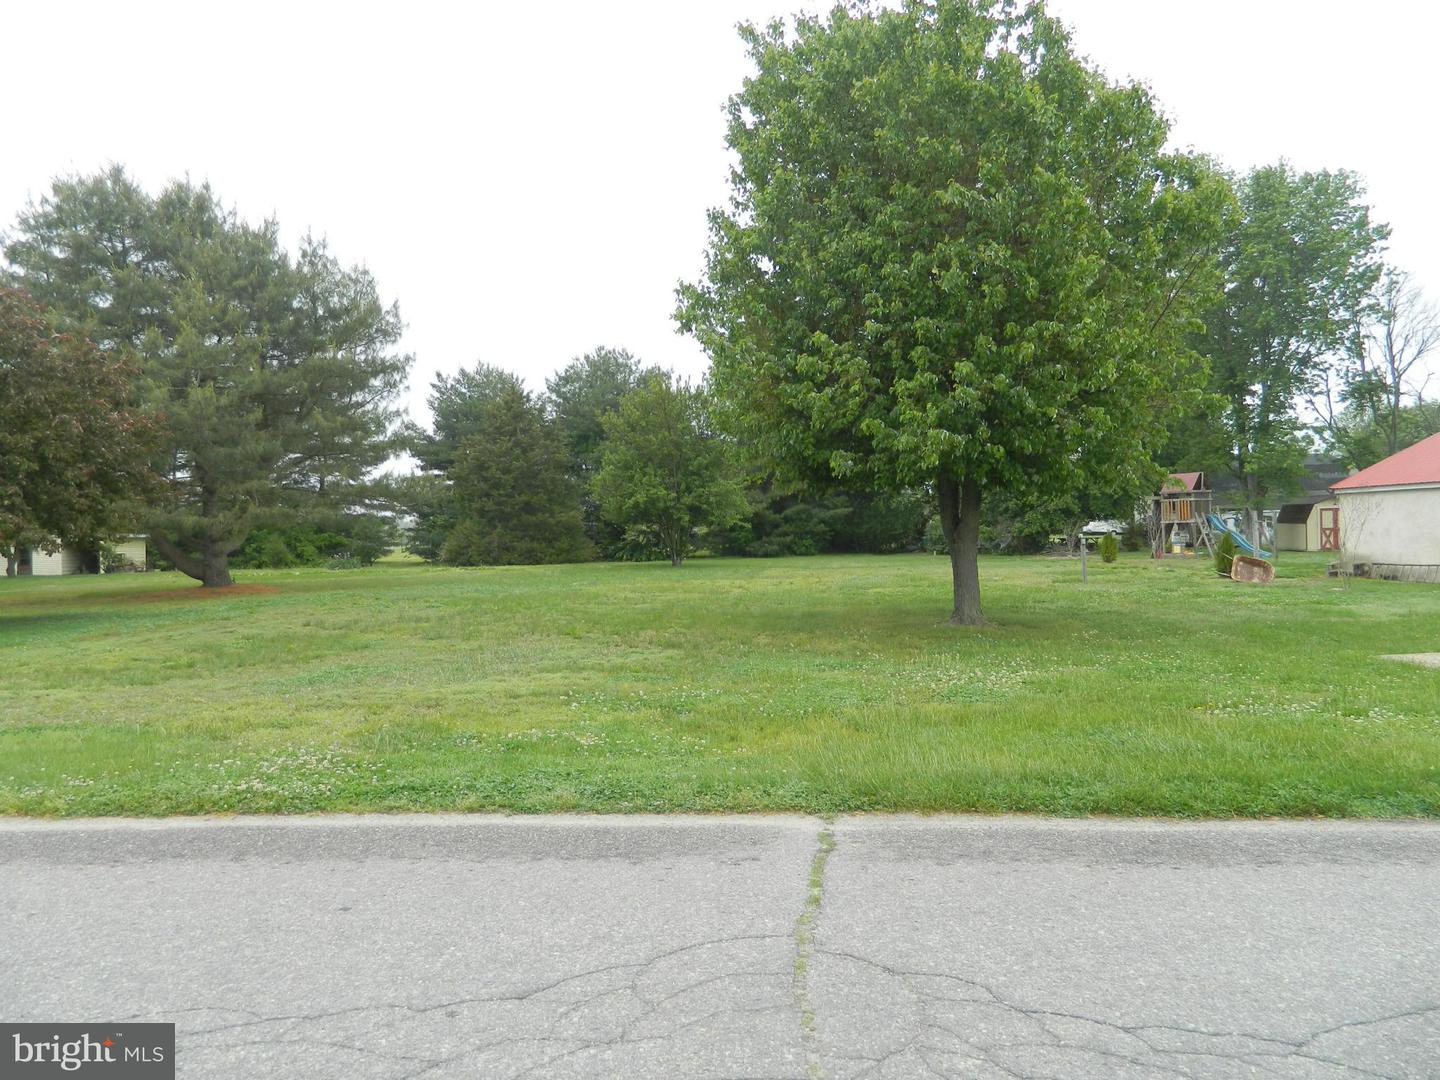 Land for Sale at Academy St Greensboro, Maryland 21639 United States